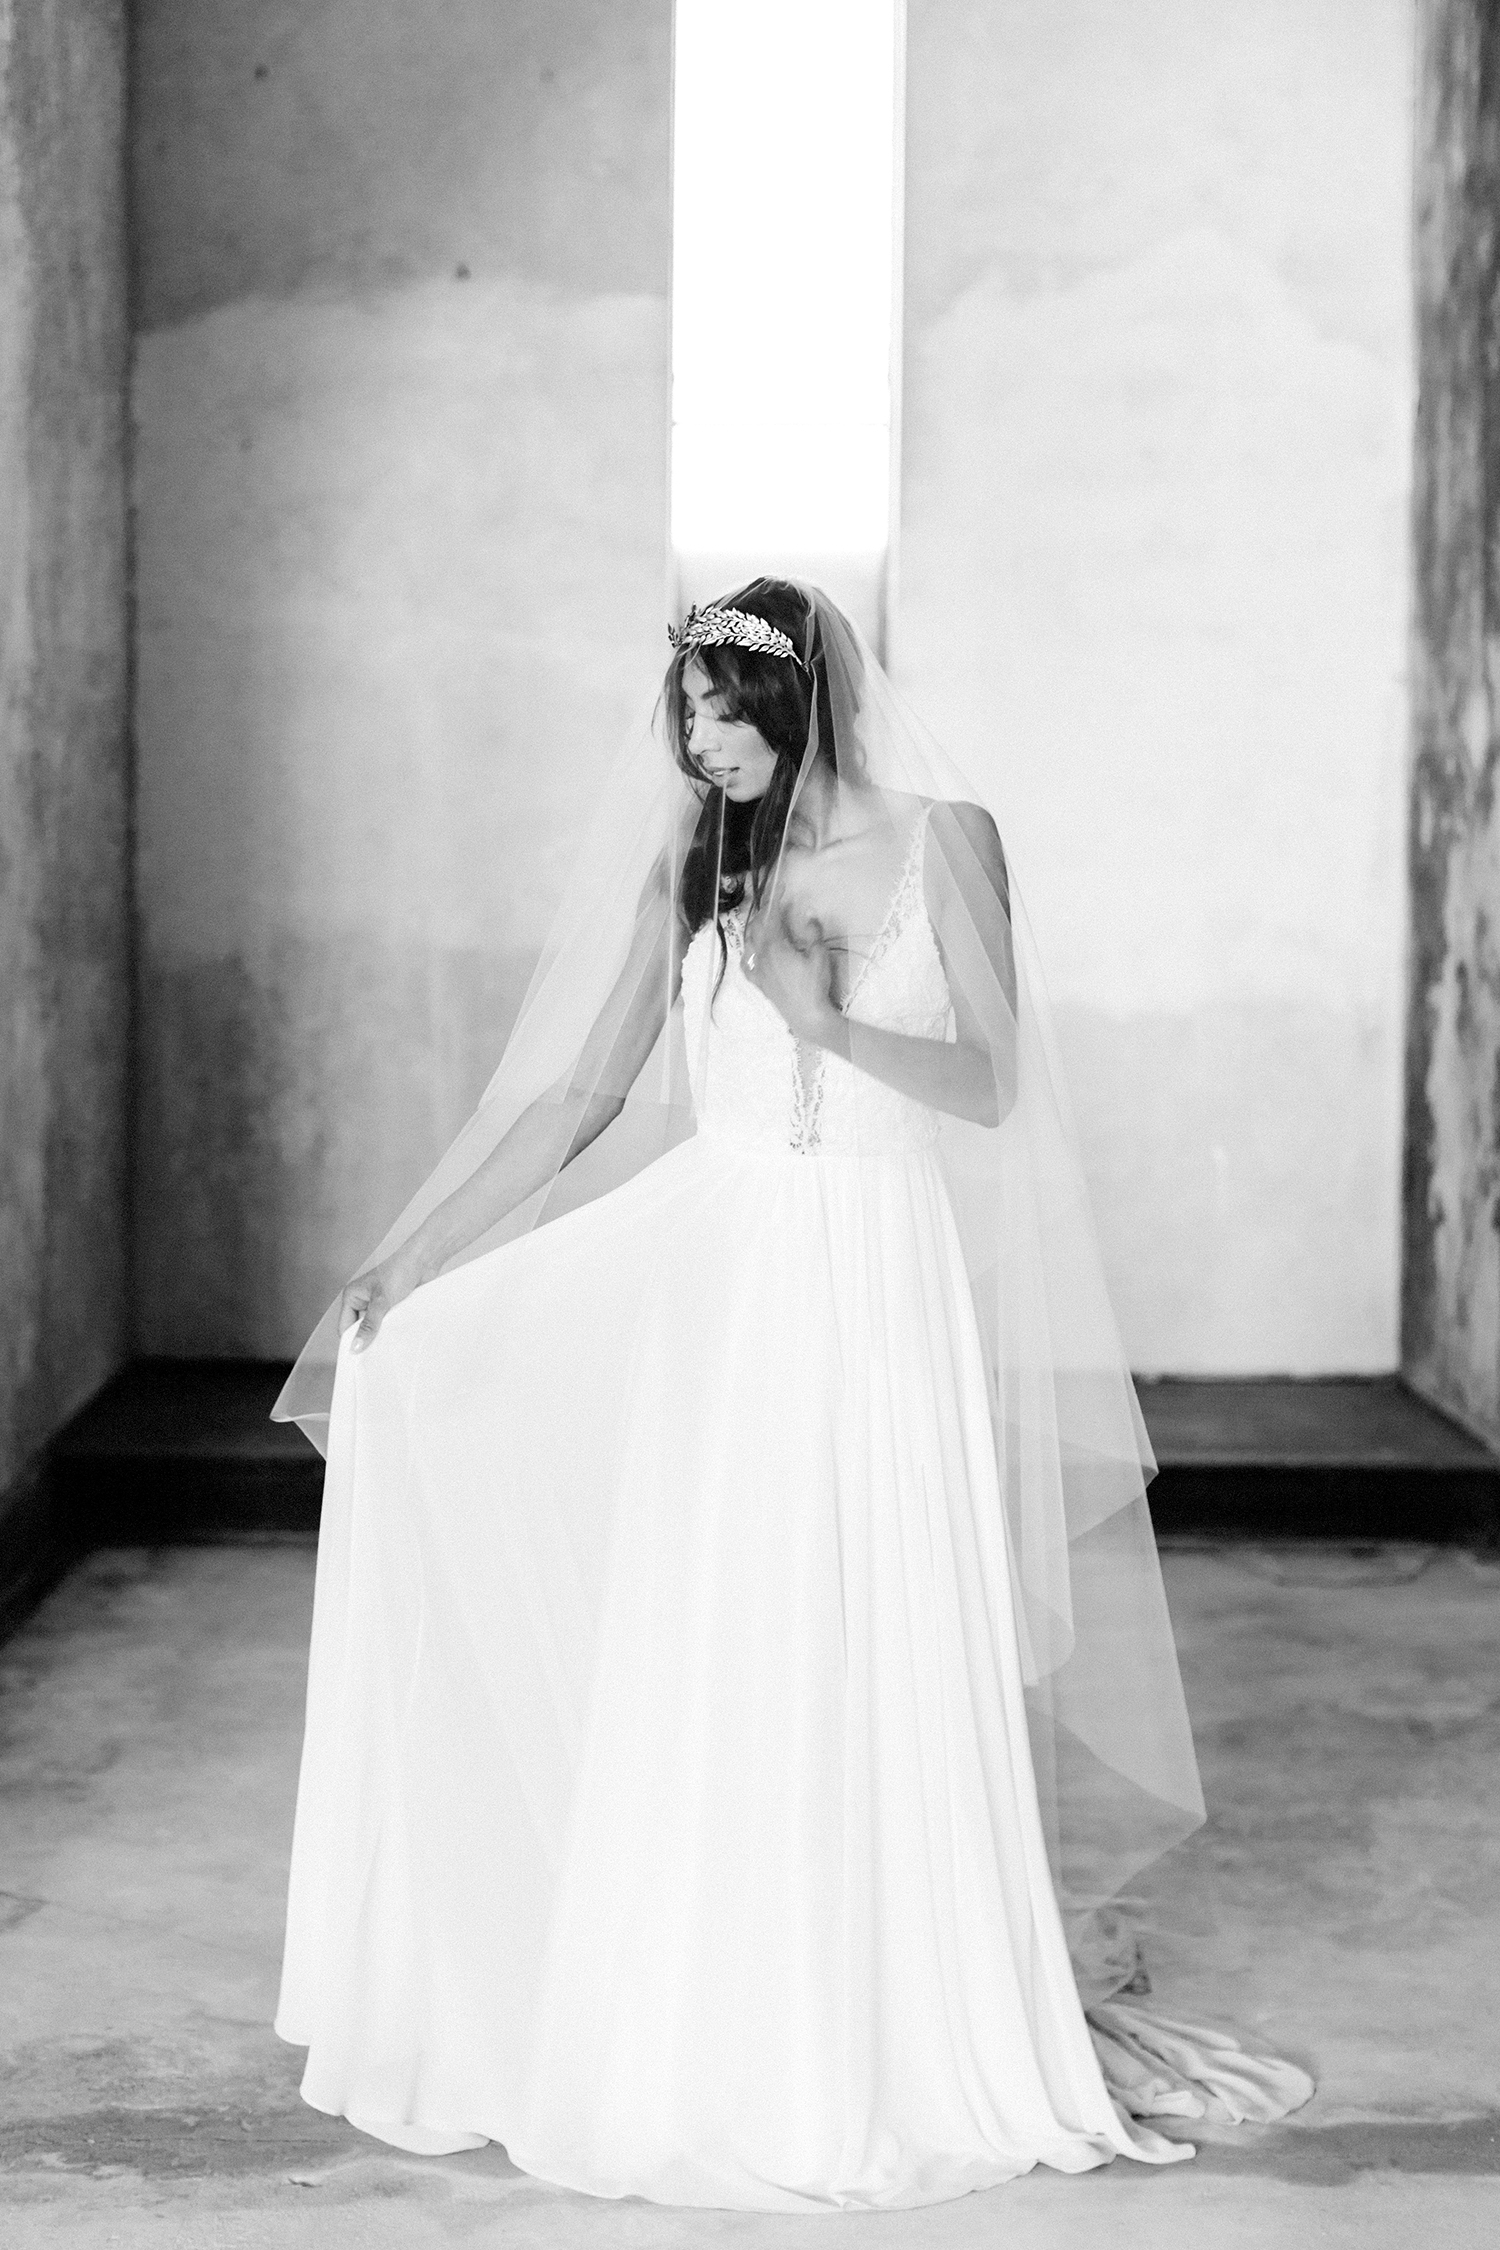 A bride in a long veil and gold headpiece at an abandoned cathedral, the location of her destination wedding